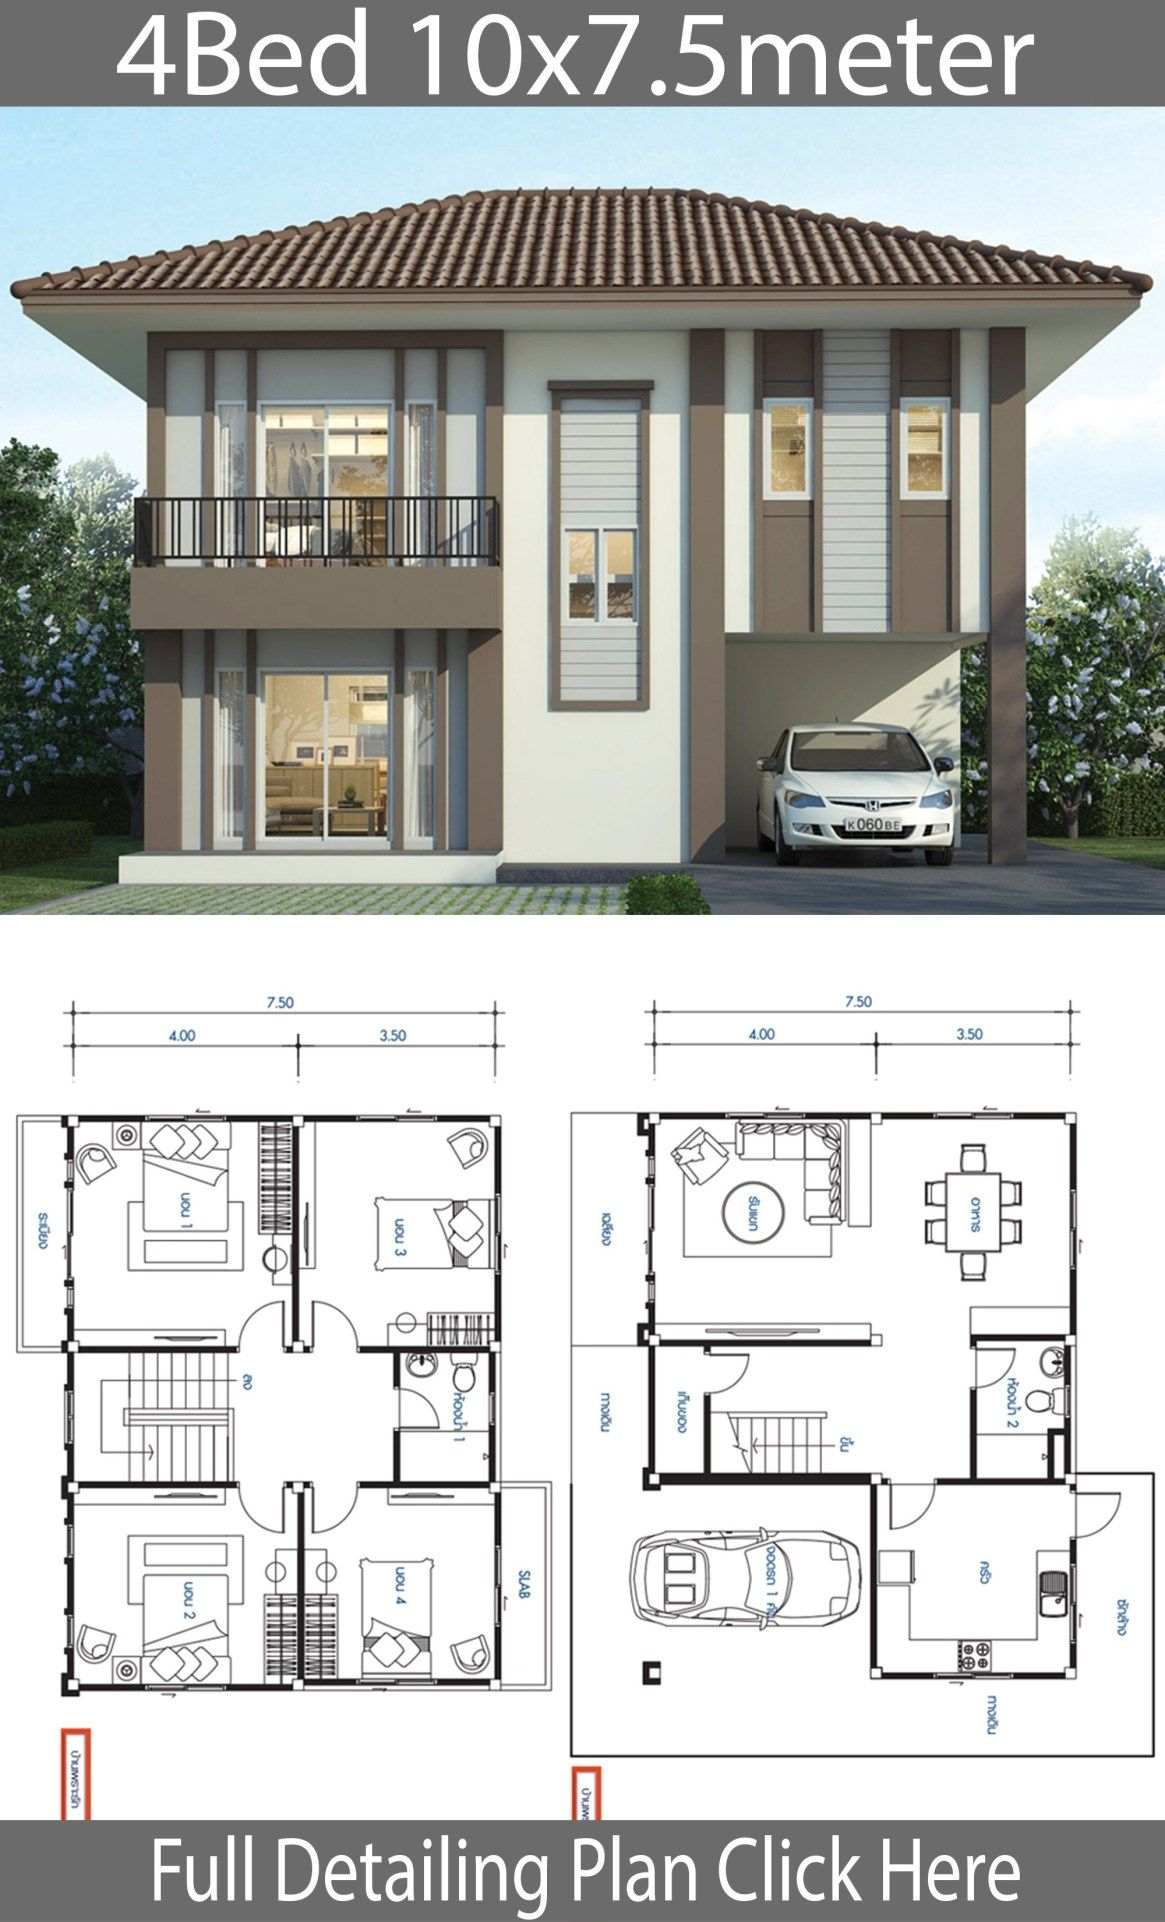 House Design Plan 10x7 5m With 4 Bedrooms Home Design With Plansearch House Design Photos Home Design Plans Modern House Plans